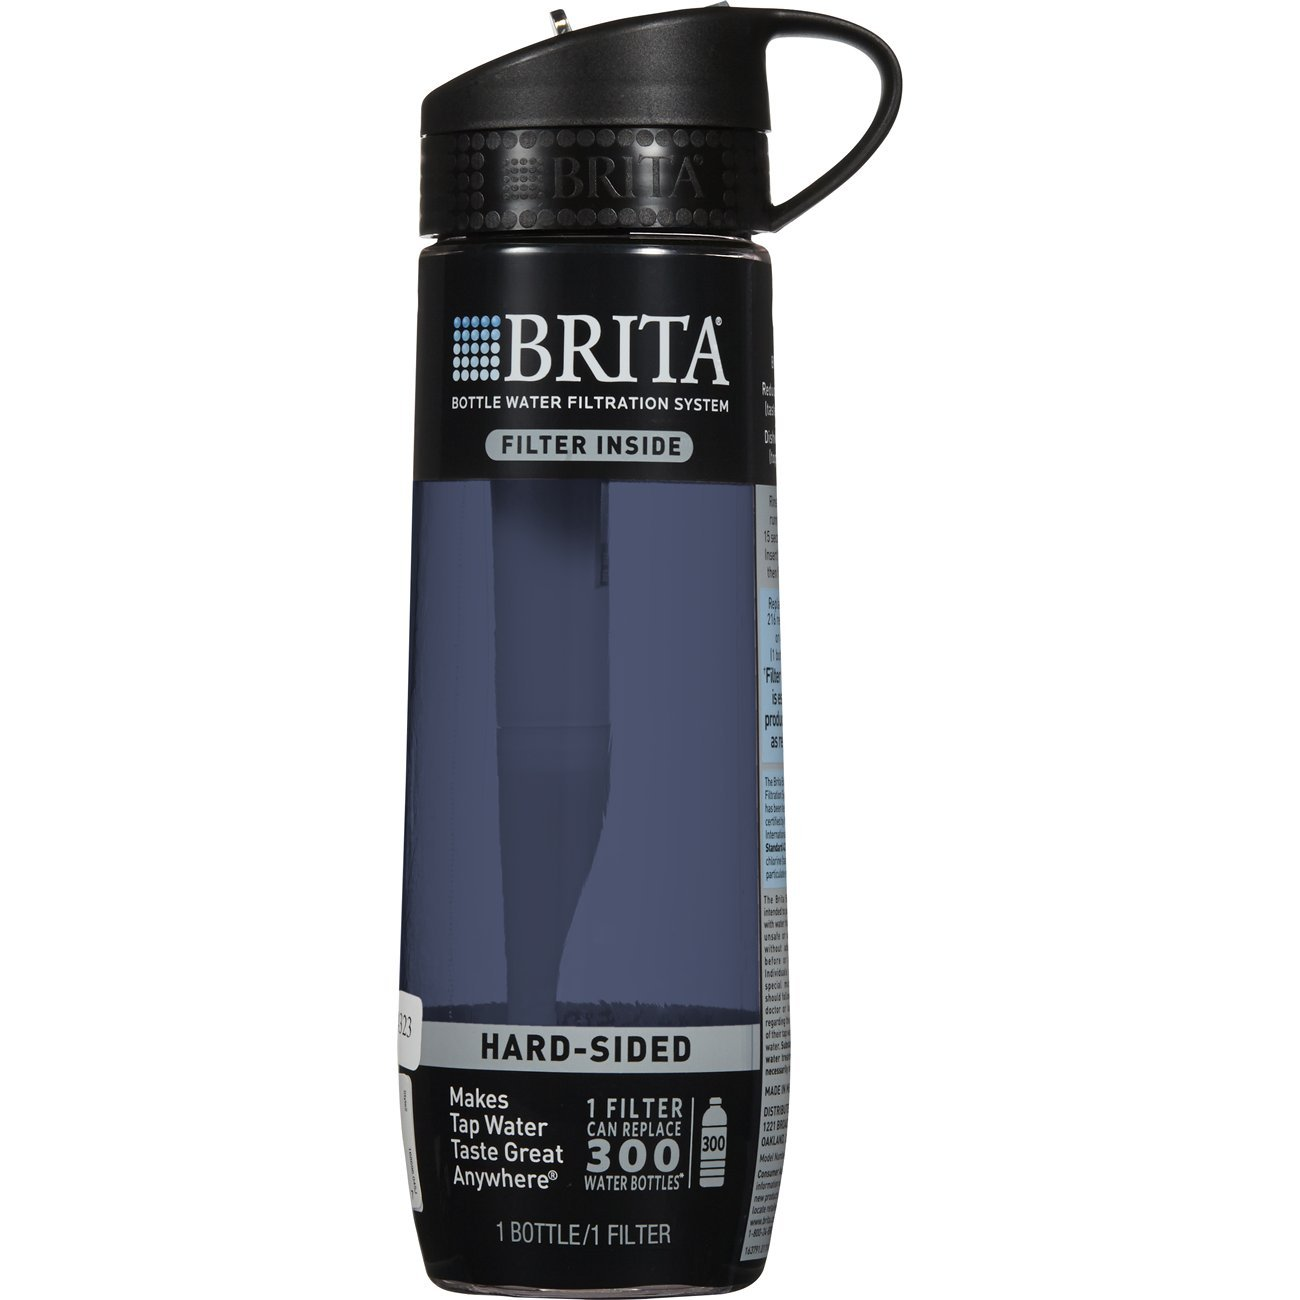 Brita 23.7 Ounce Hard Sided Water Bottle with Filter - BPA Free - Gray by Brita (Image #3)